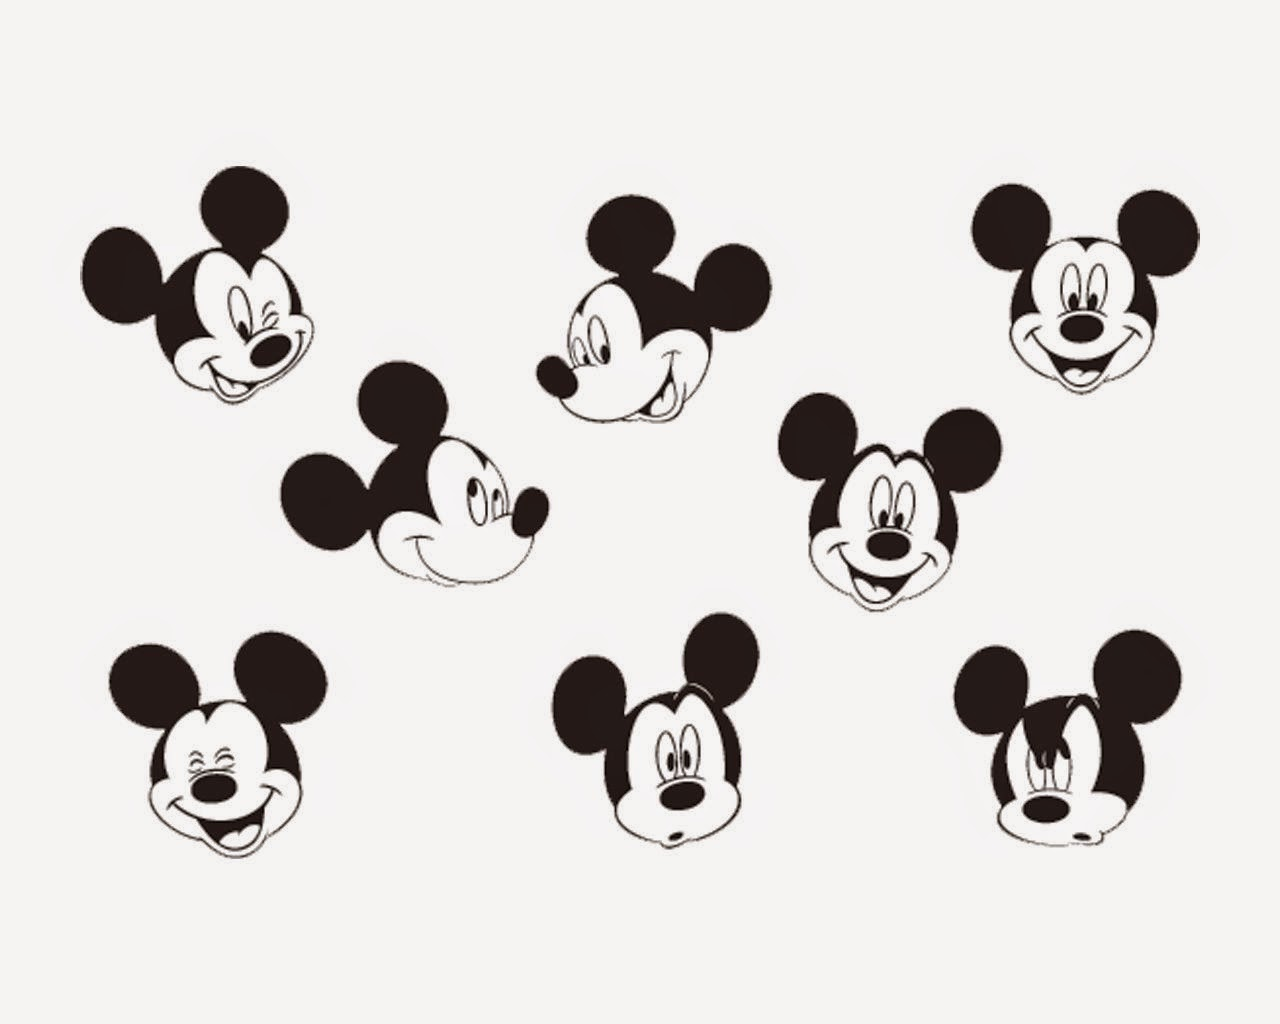 Mickey Mouse Wallpapers, part 3